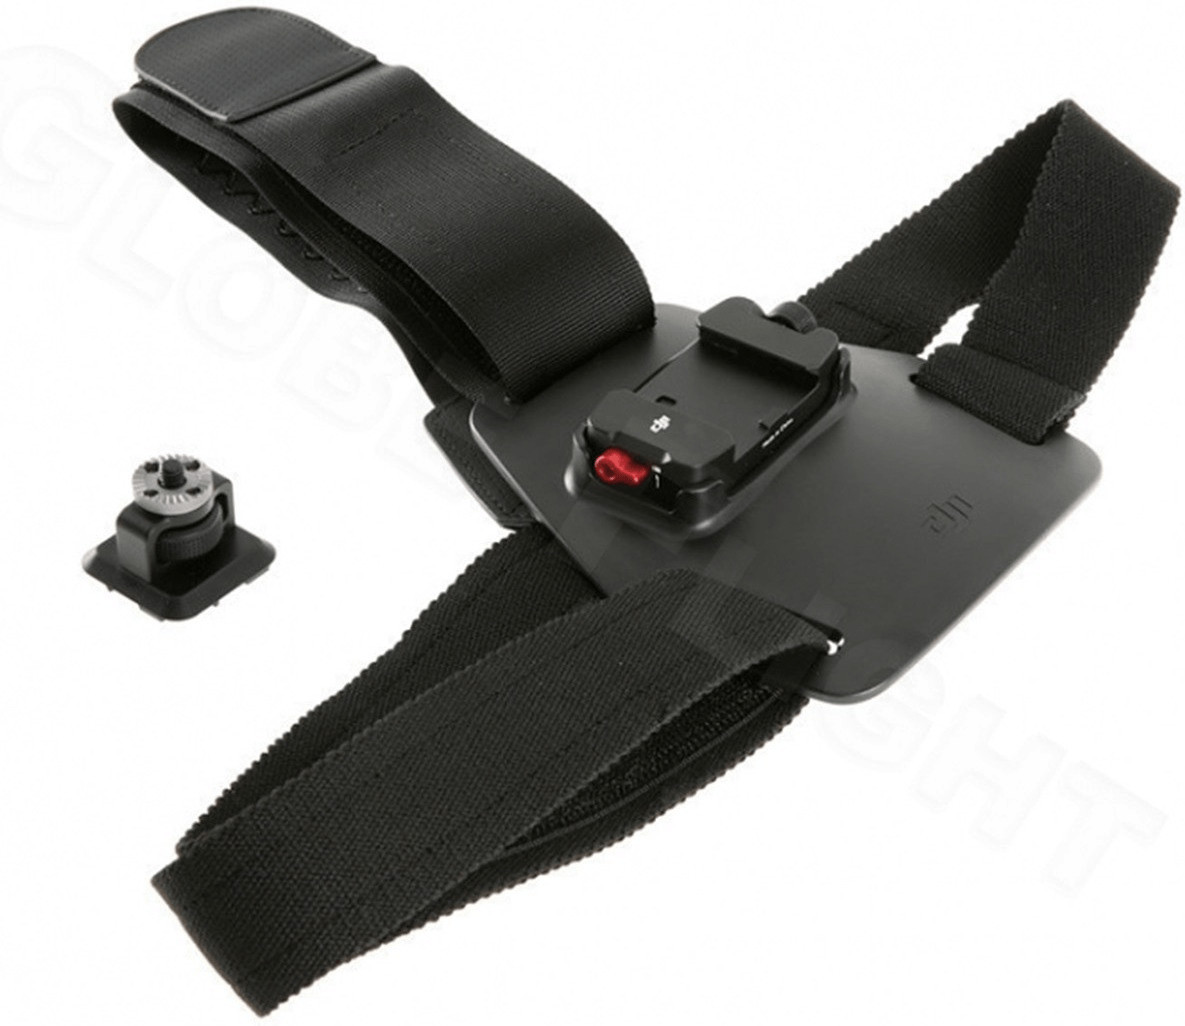 Image of DJI Chest Strap Mount PART79